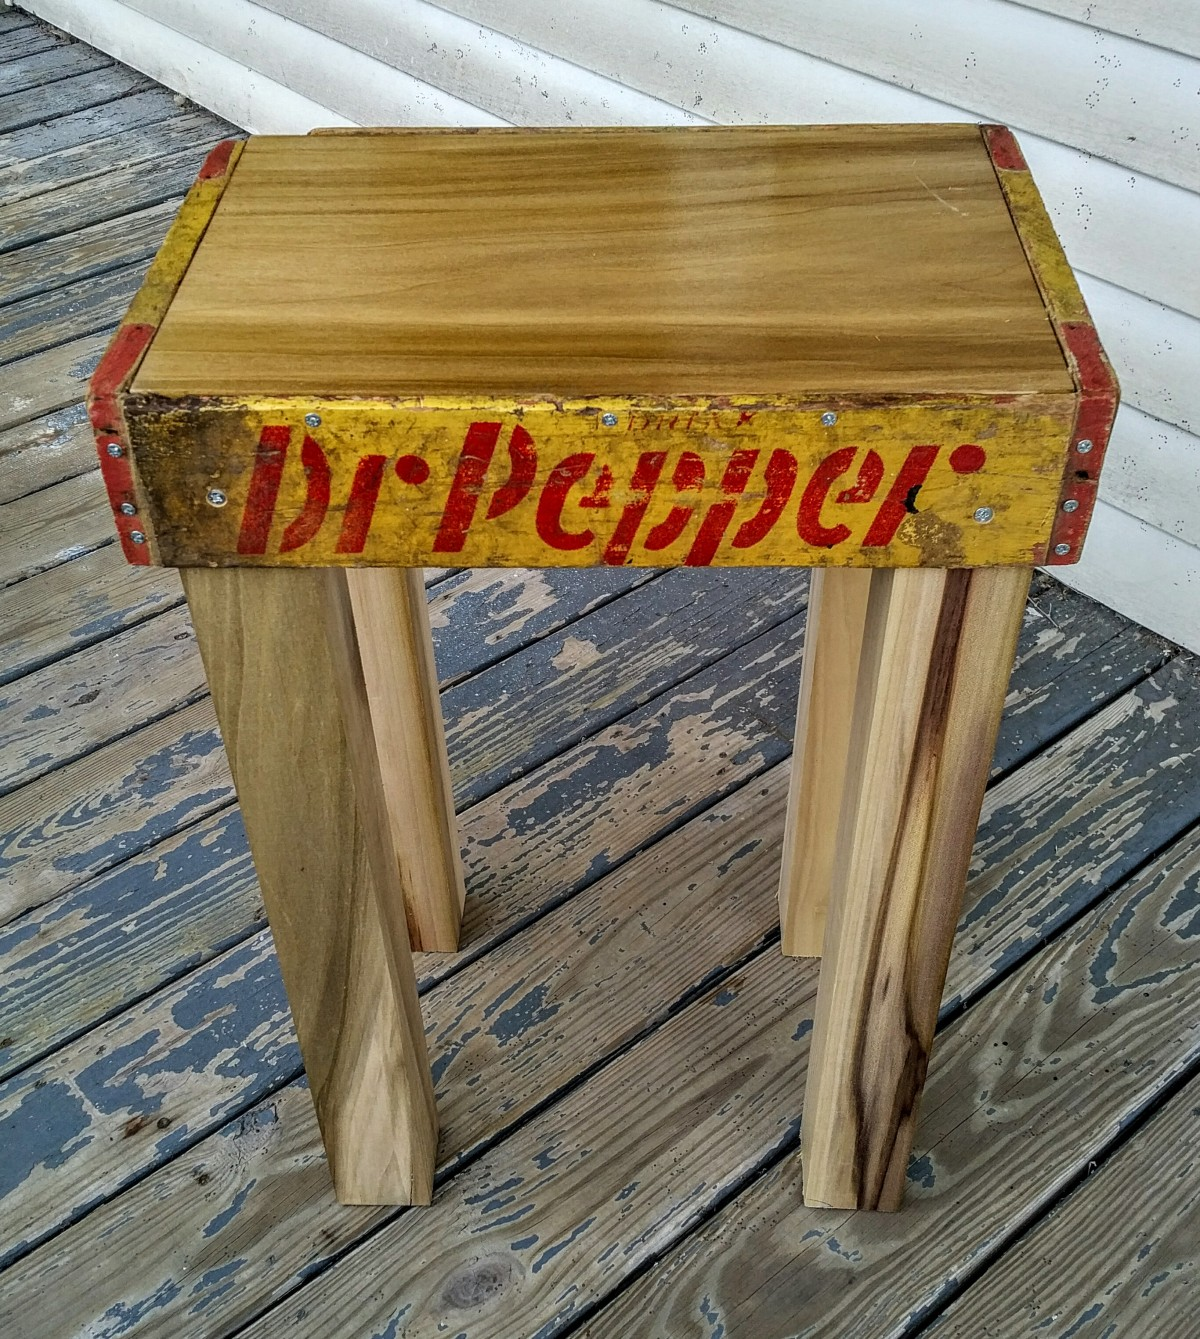 A table for a Dr. Pepper enthusiast